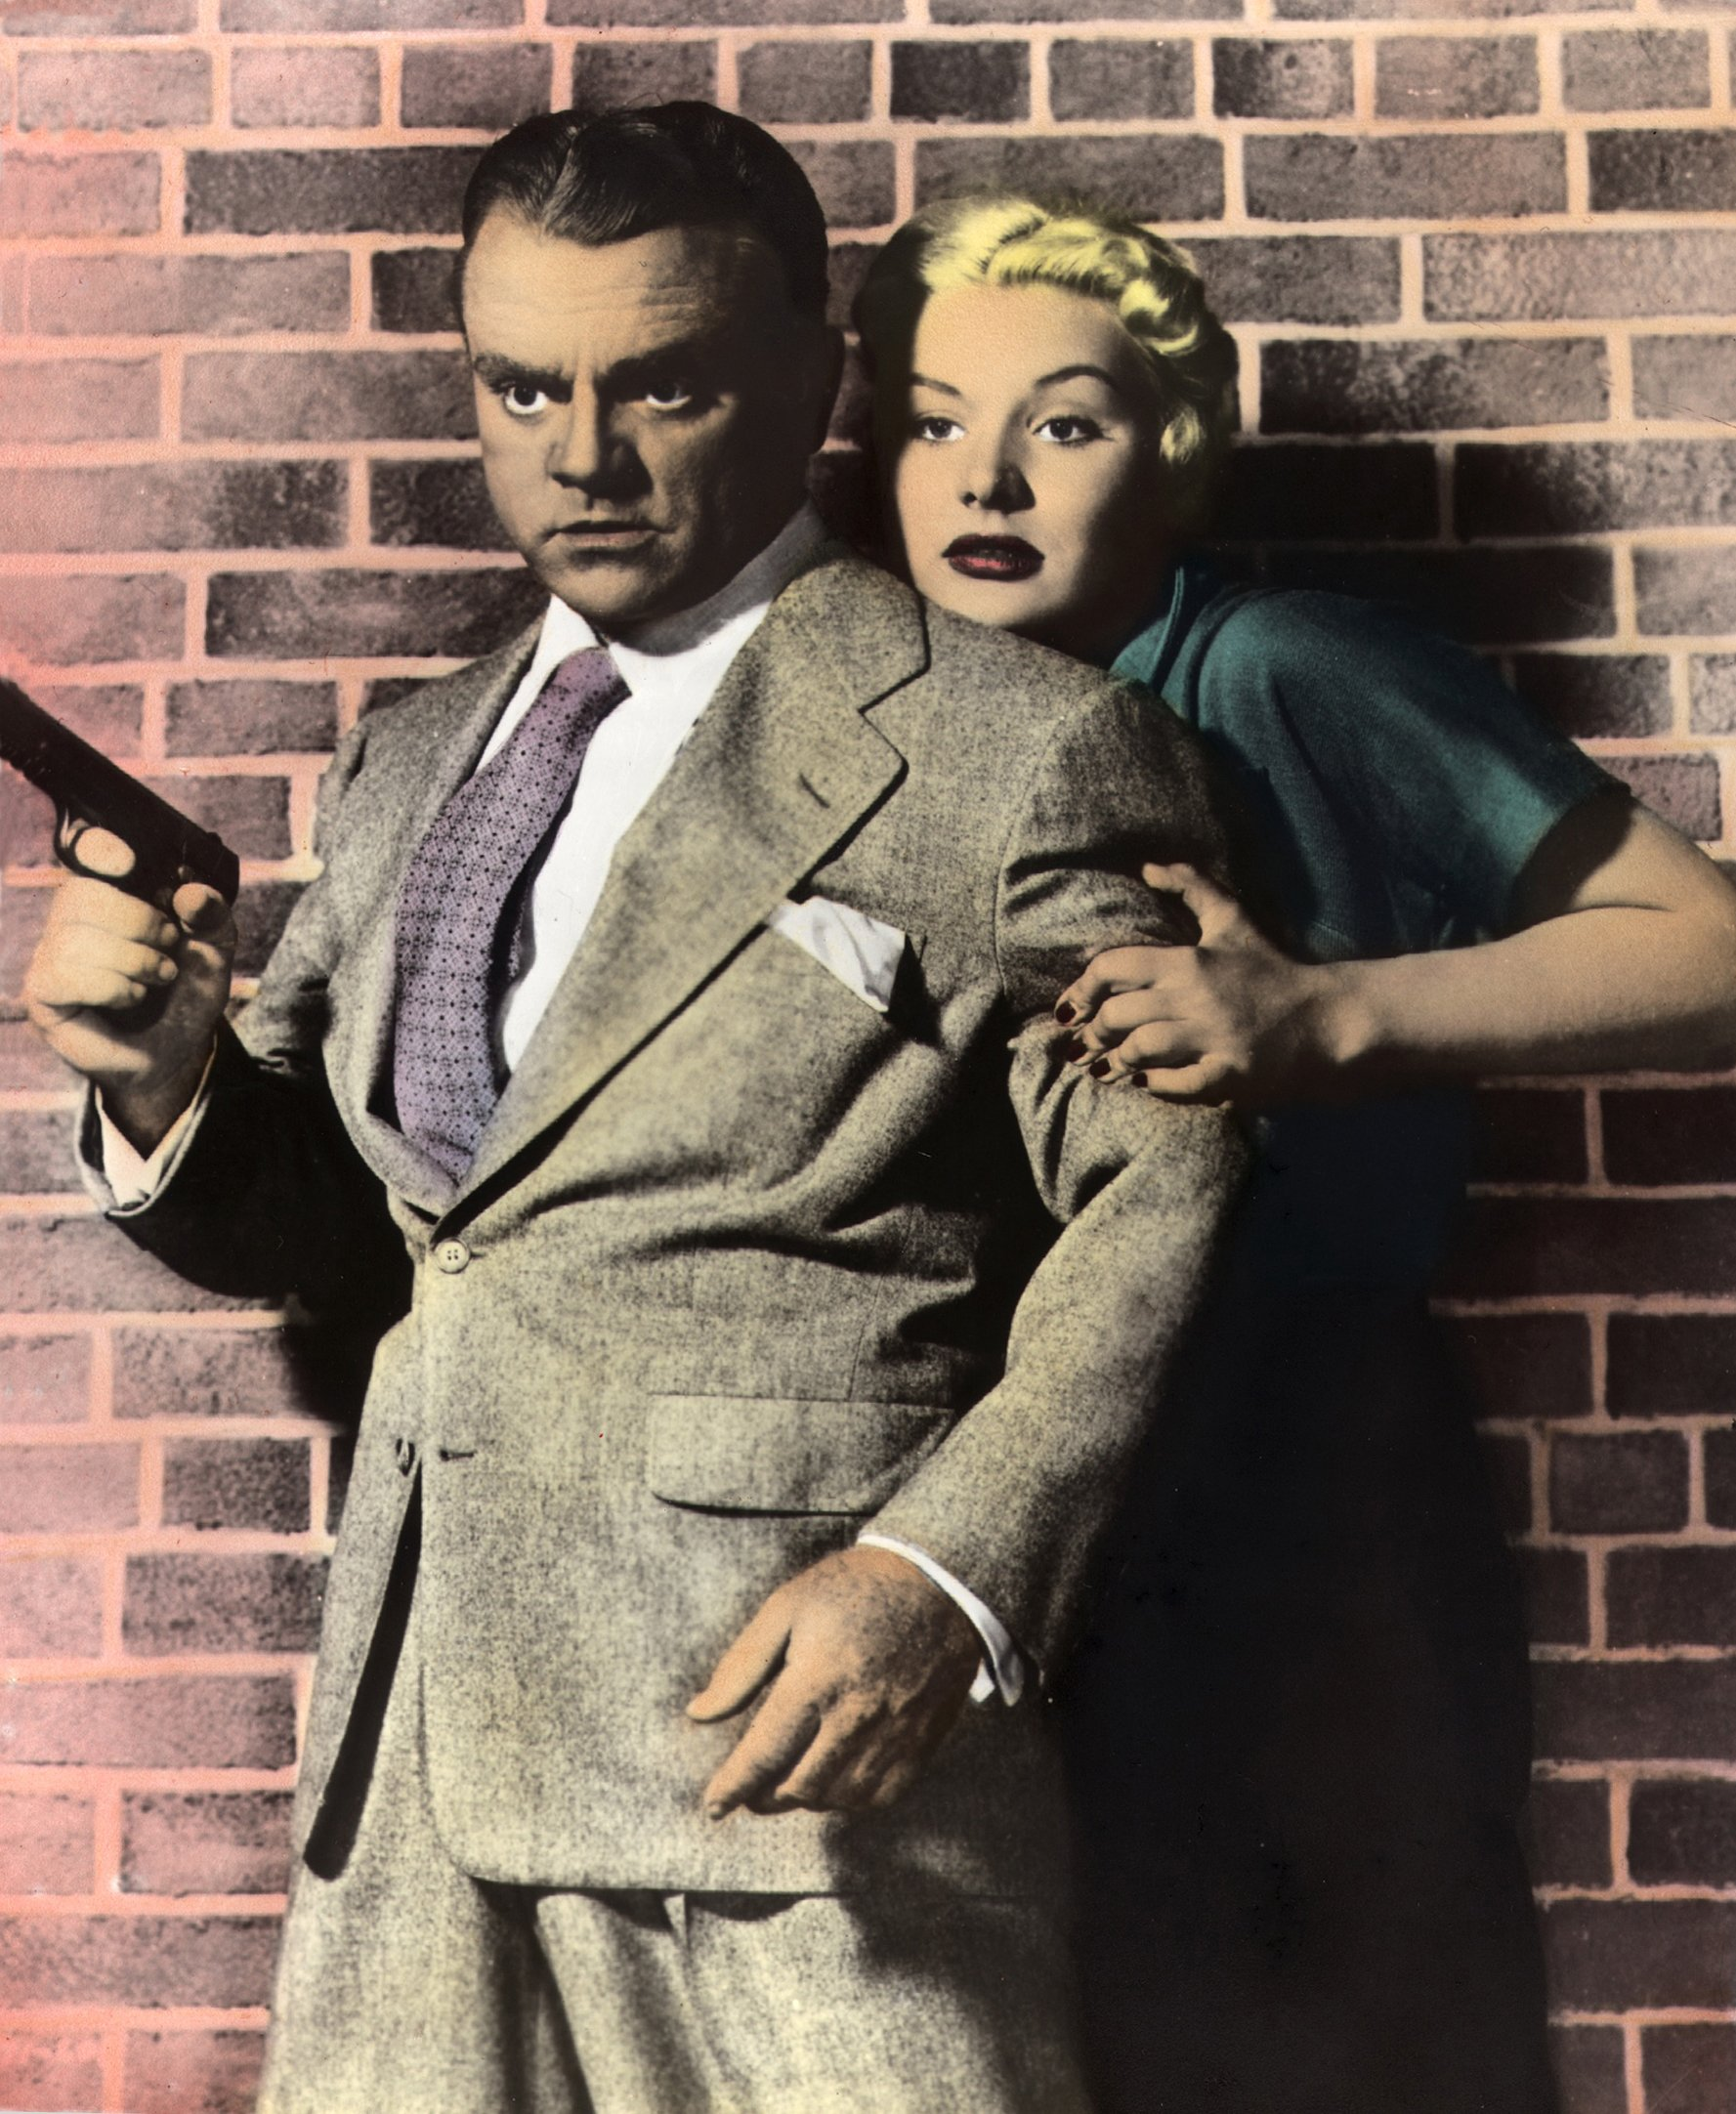 """A sketch of a still from the movie """"Kiss Tomorrow Goodbye"""" starring Barbara Payton and James Cagney, 1950. 